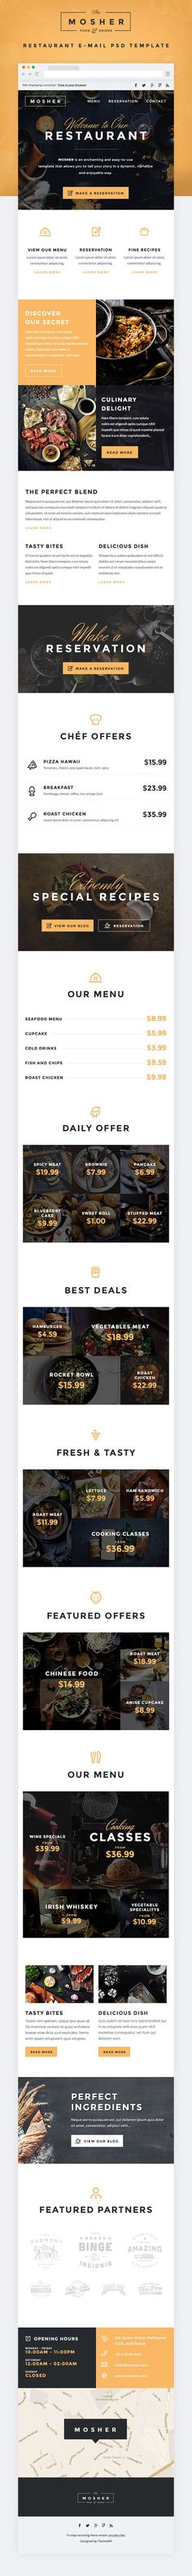 Mosher - Restaurant E-newsletter Template                                                                                                                                                                                 More